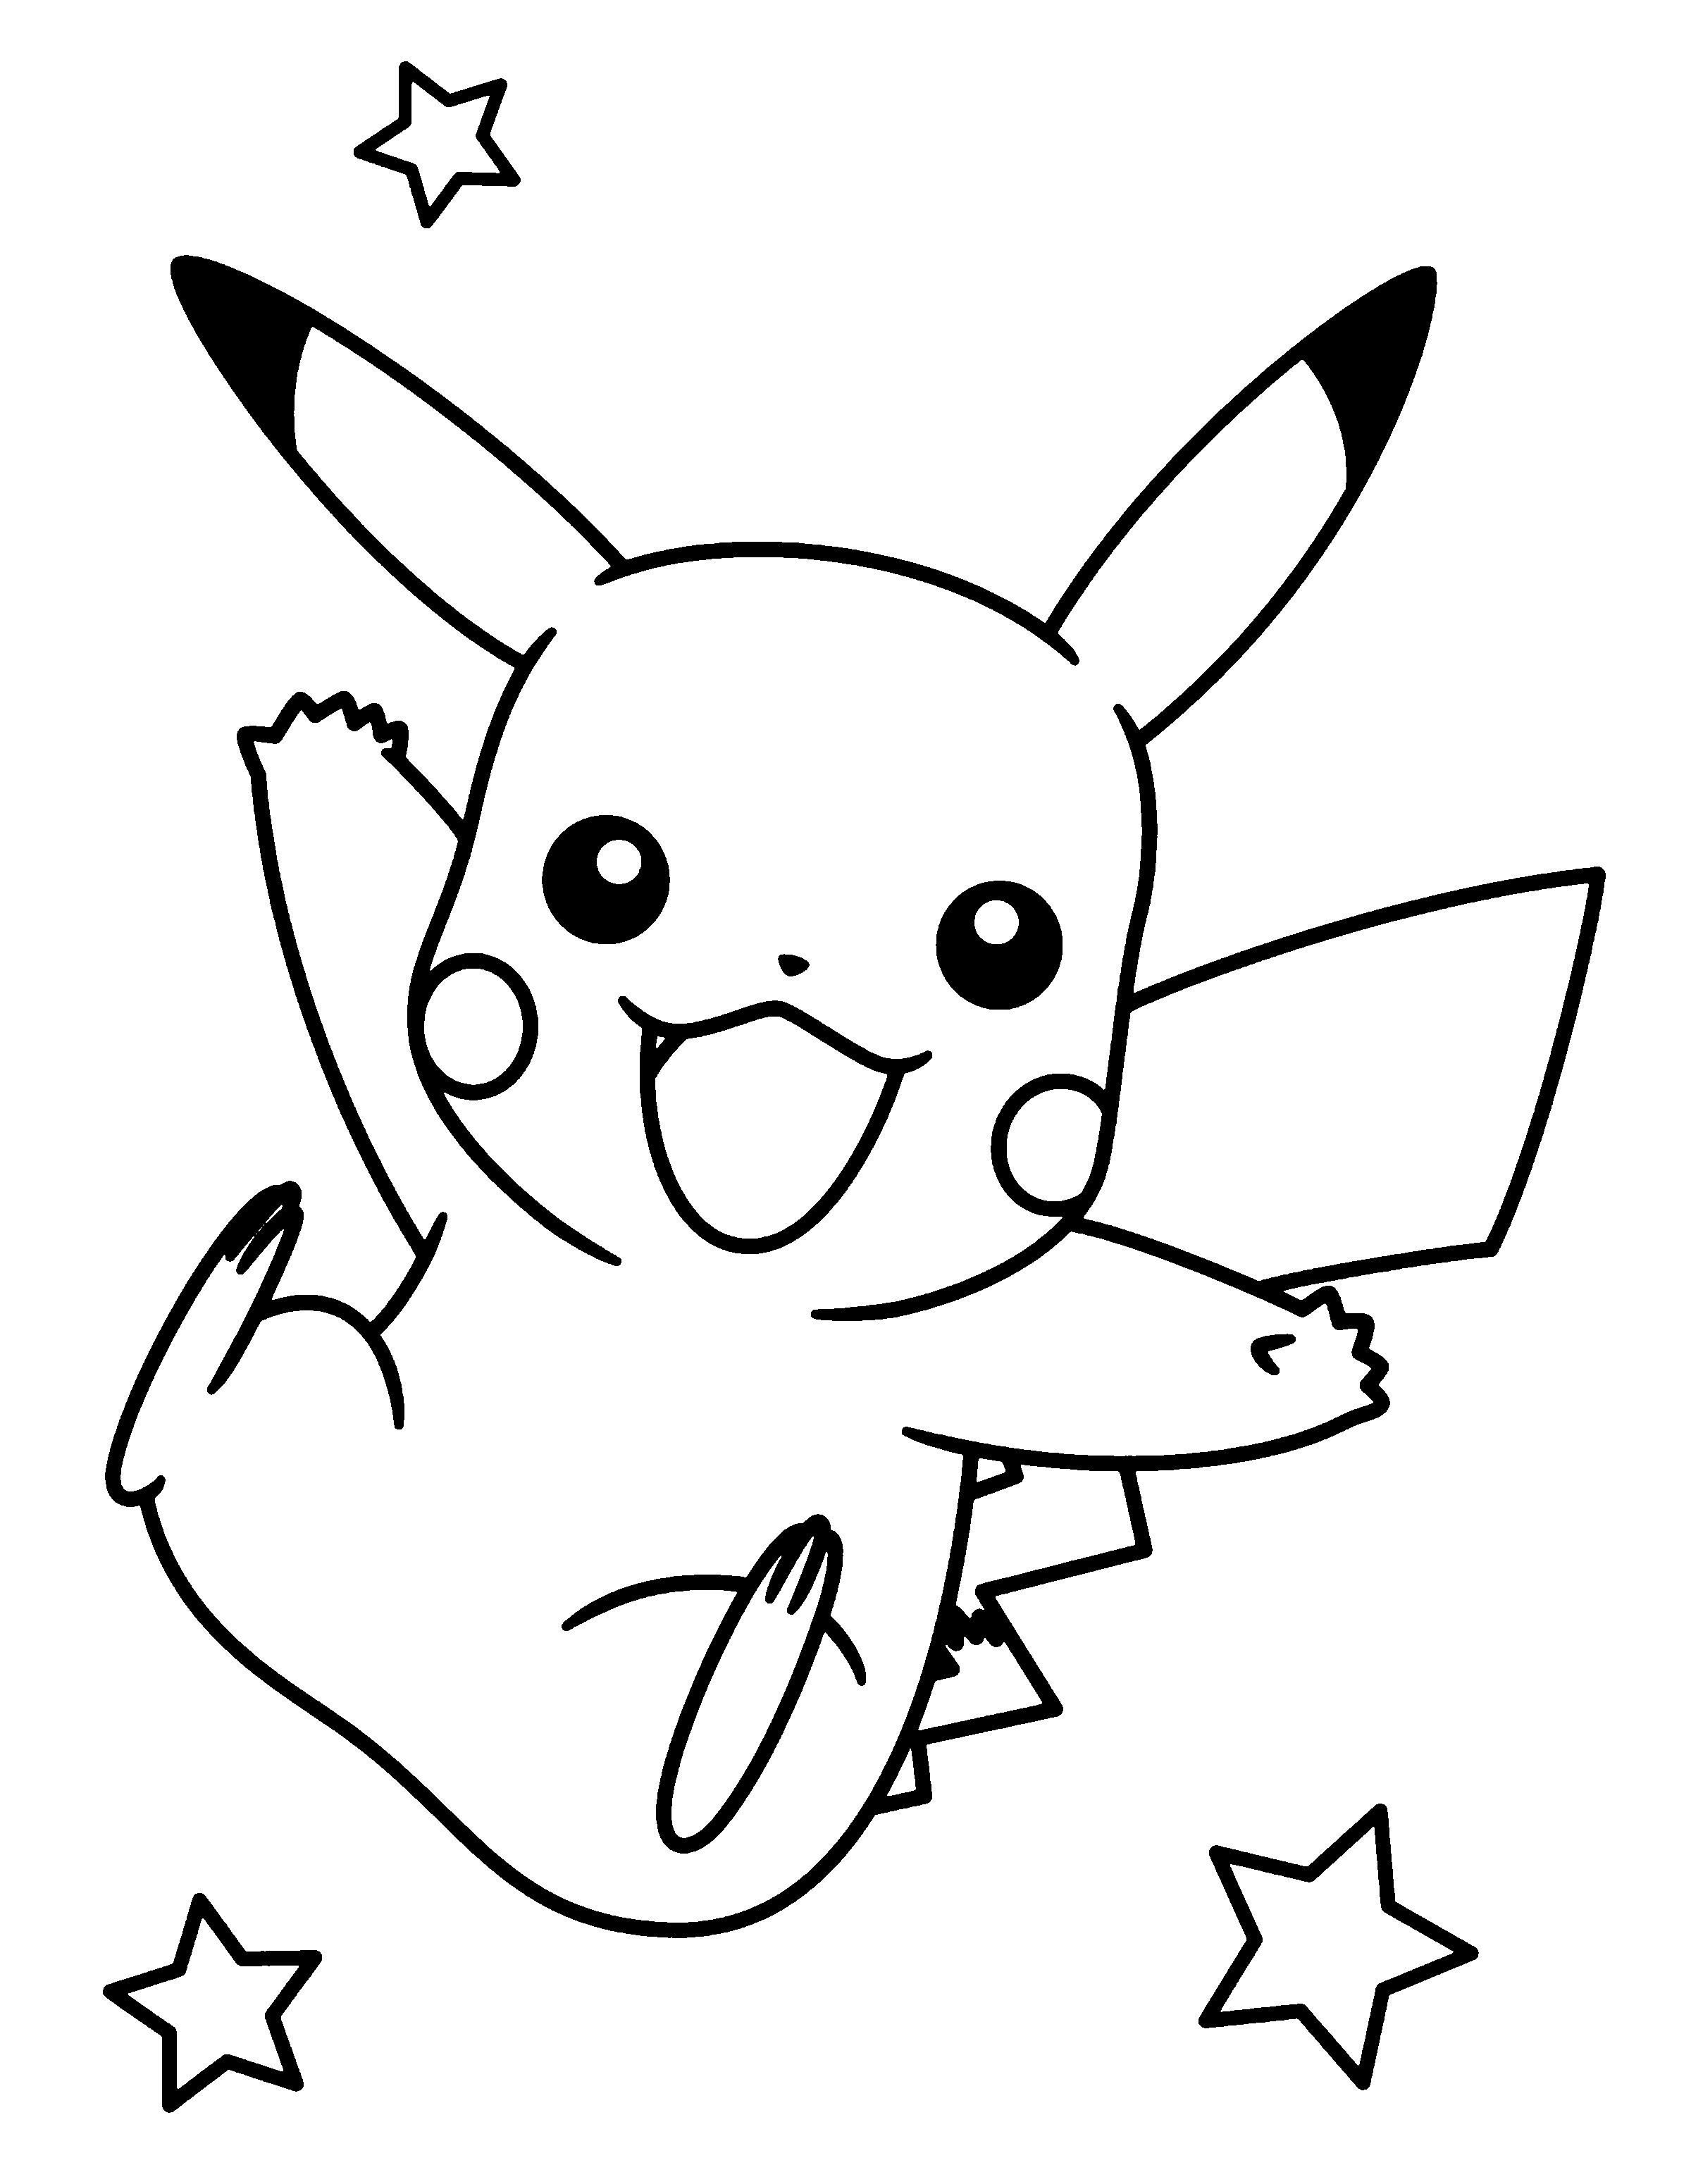 Pikachu Rockstar Coloring Pages Through The Thousands Of Photos